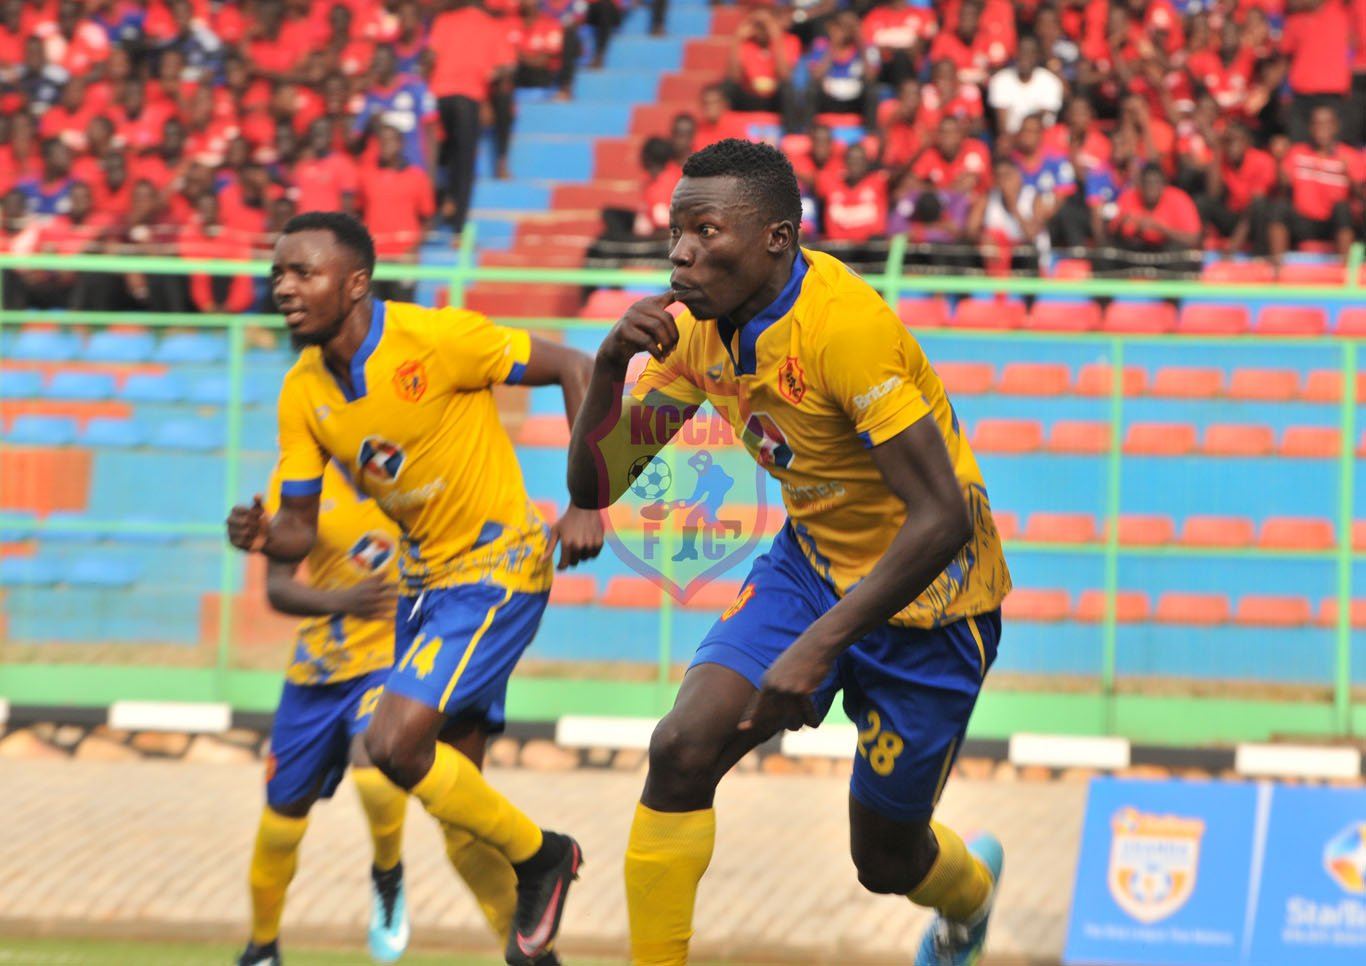 KCCA drew 1-1 in their last league game (photo by KCCA media)